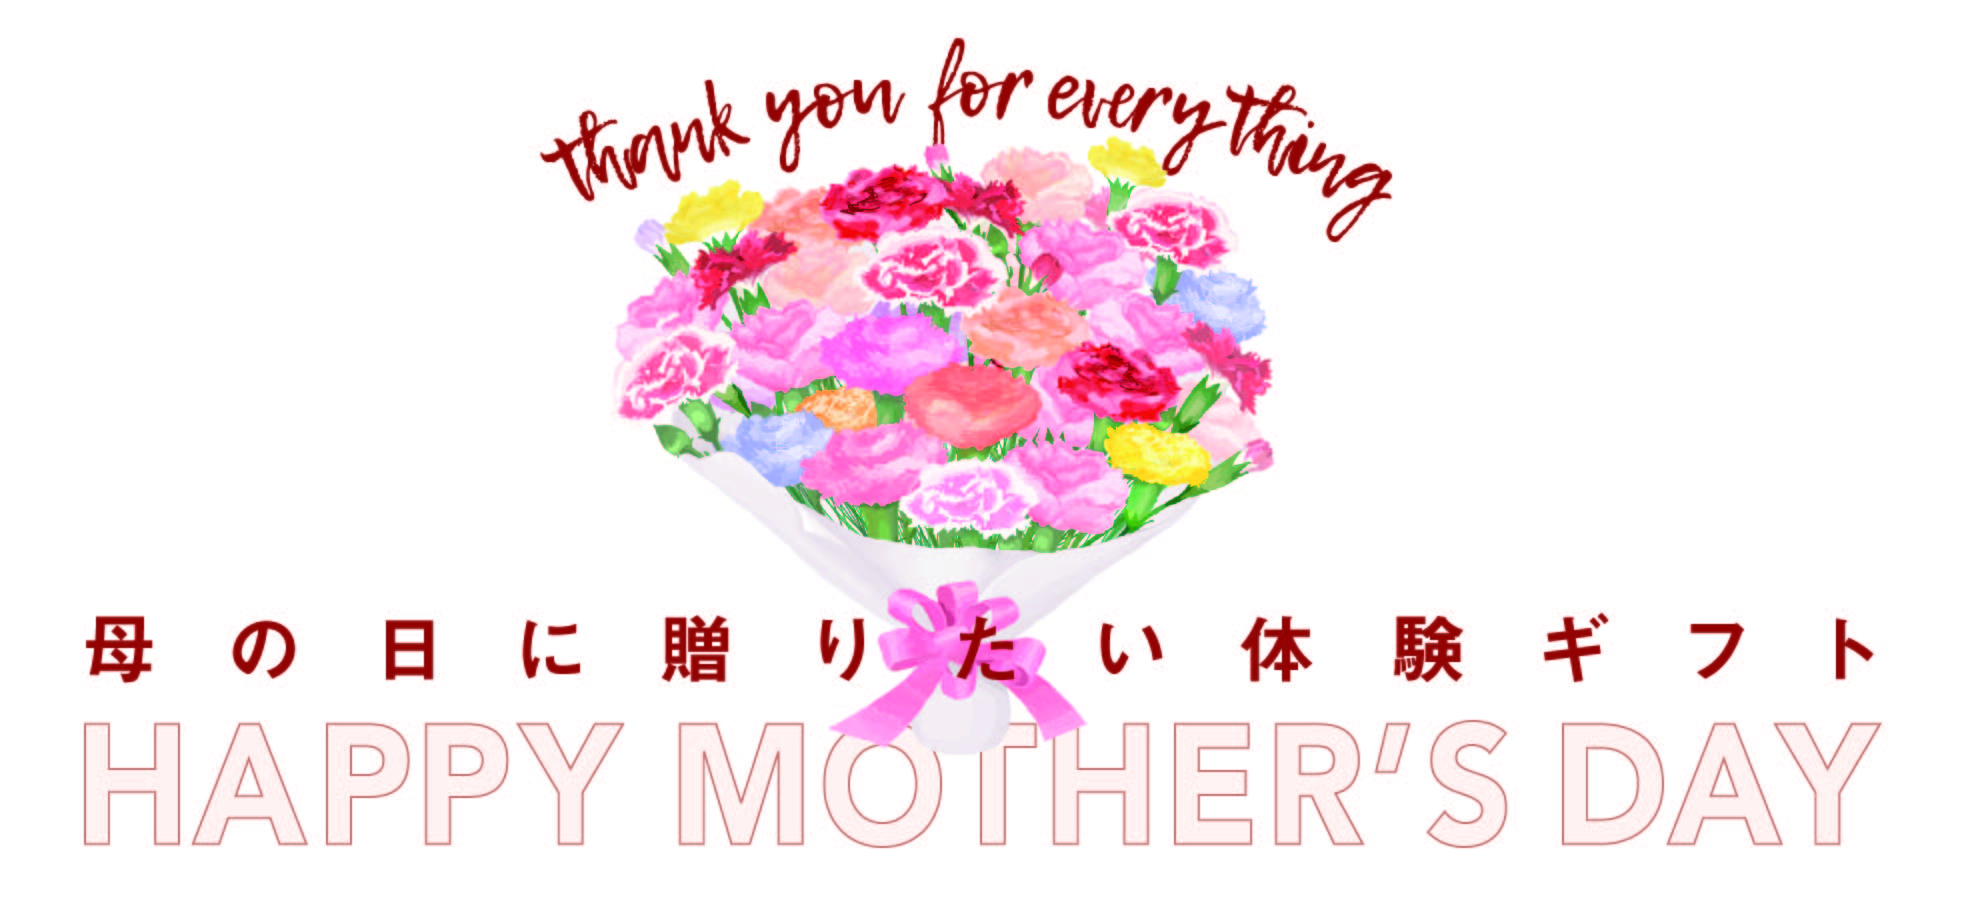 HAPPY MOTHER'S DAY 母の日に贈りたい体験ギフト